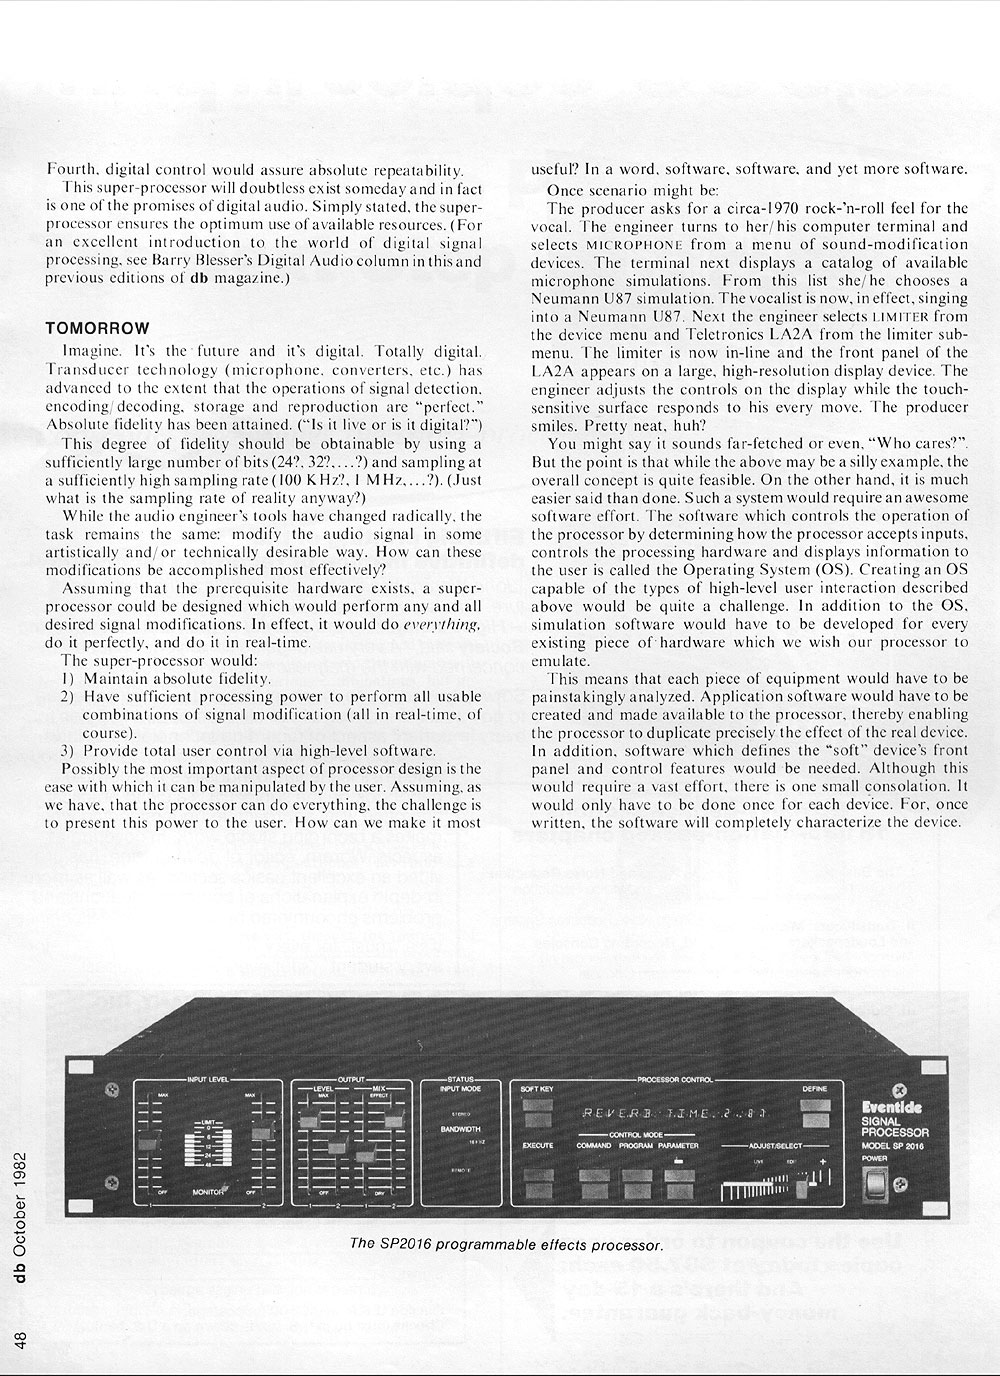 DB Magazine — Digital Audio Processing, October 1982, Page 2